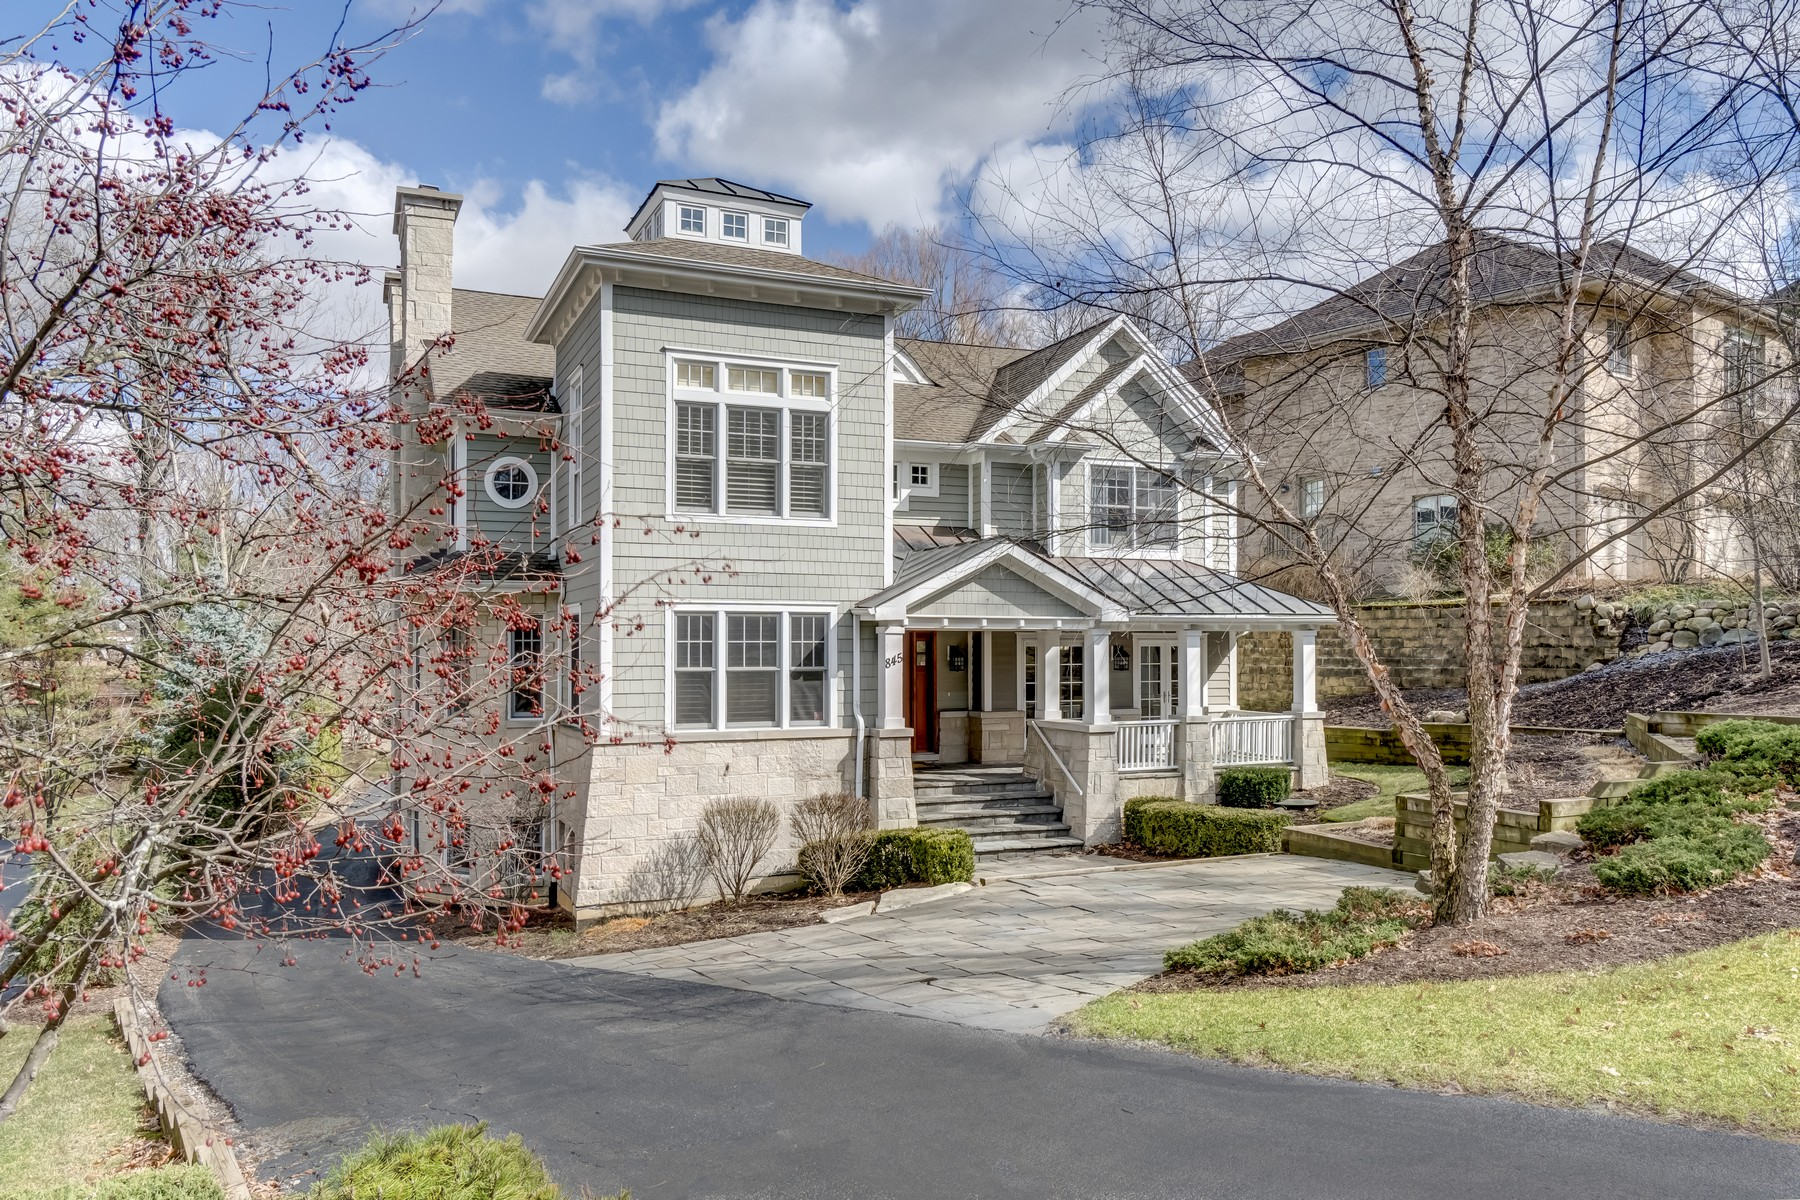 Single Family Home for Sale at Beautiful Home with Modern and Luxurious Finishes 845 N Washington Street, Hinsdale, Illinois, 60521 United States